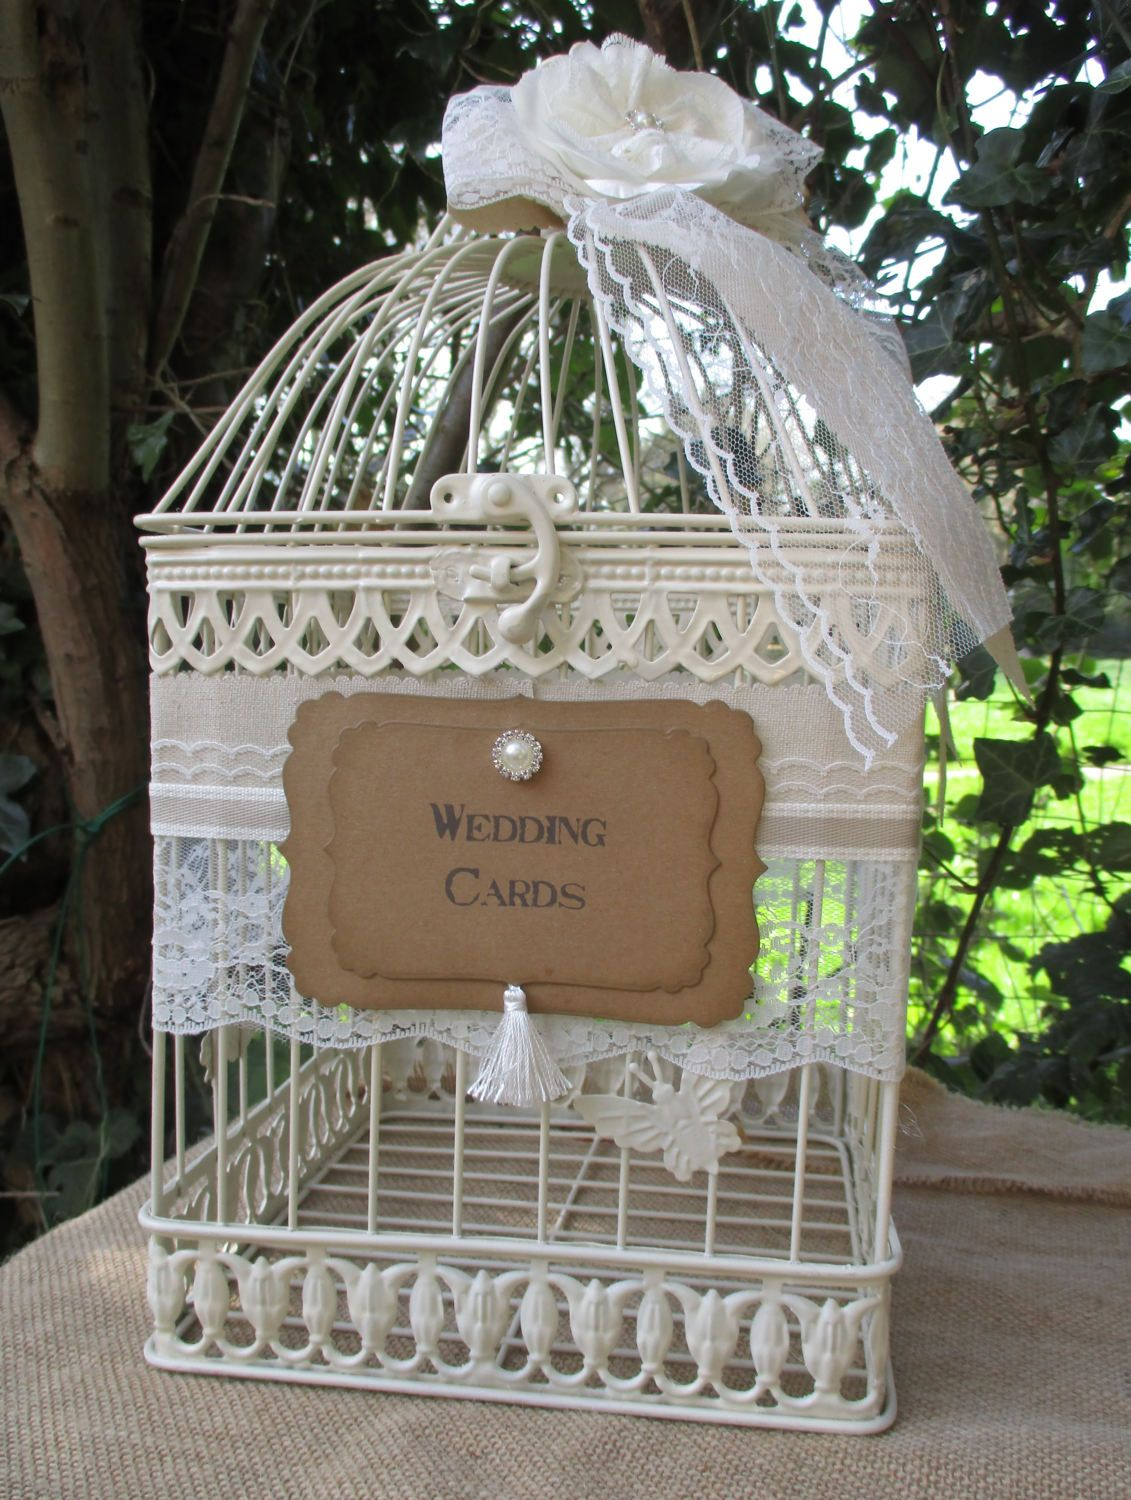 Birdcage Wedding Card Holder Post Box Linen And Lace Card Etsy Wedding Cards Wedding Card Holder Wedding Birdcage